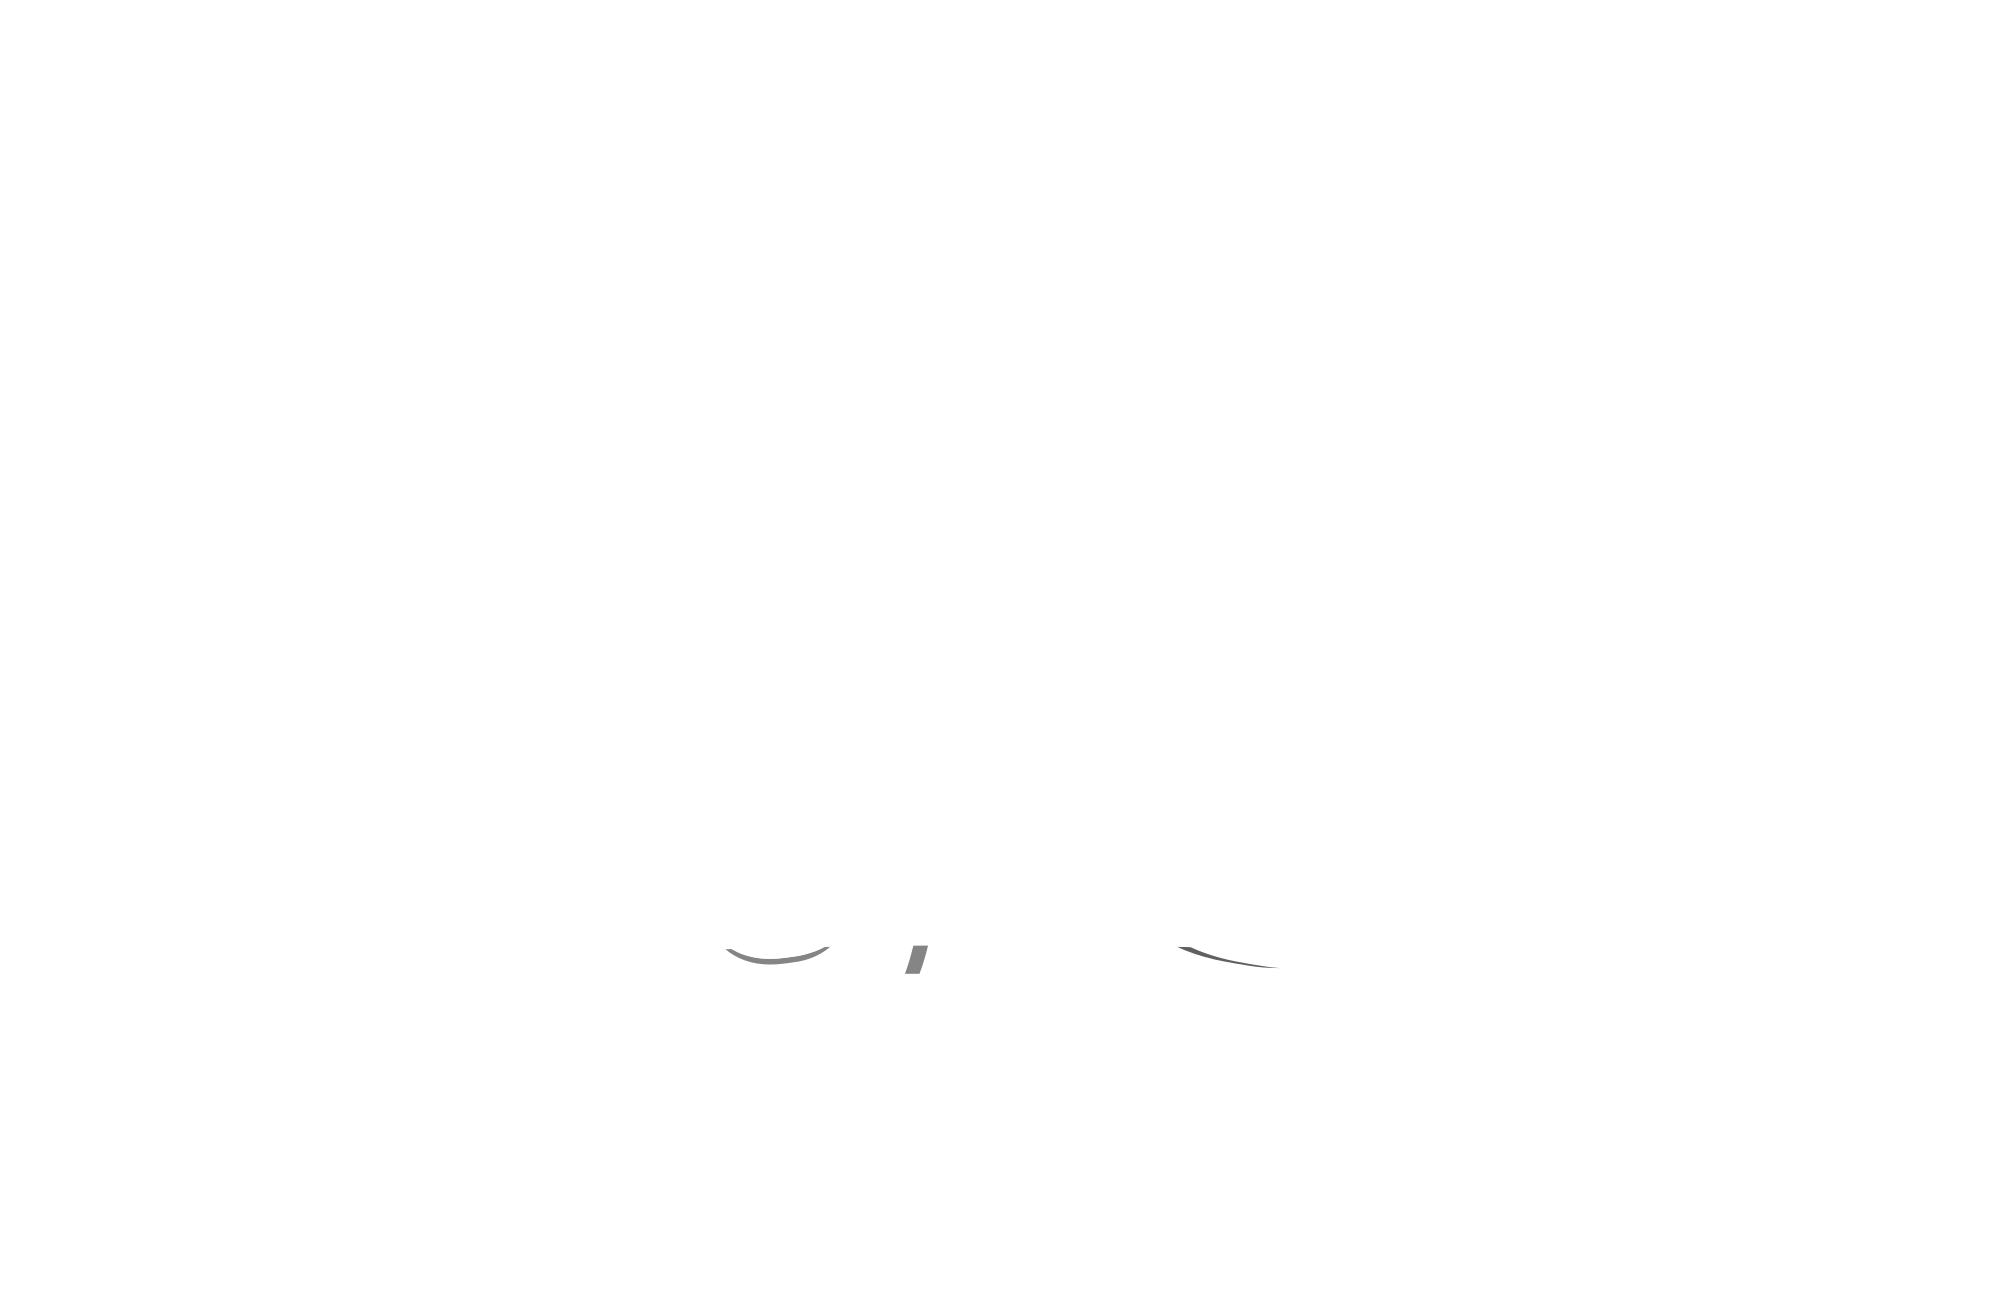 More-Bookings.com